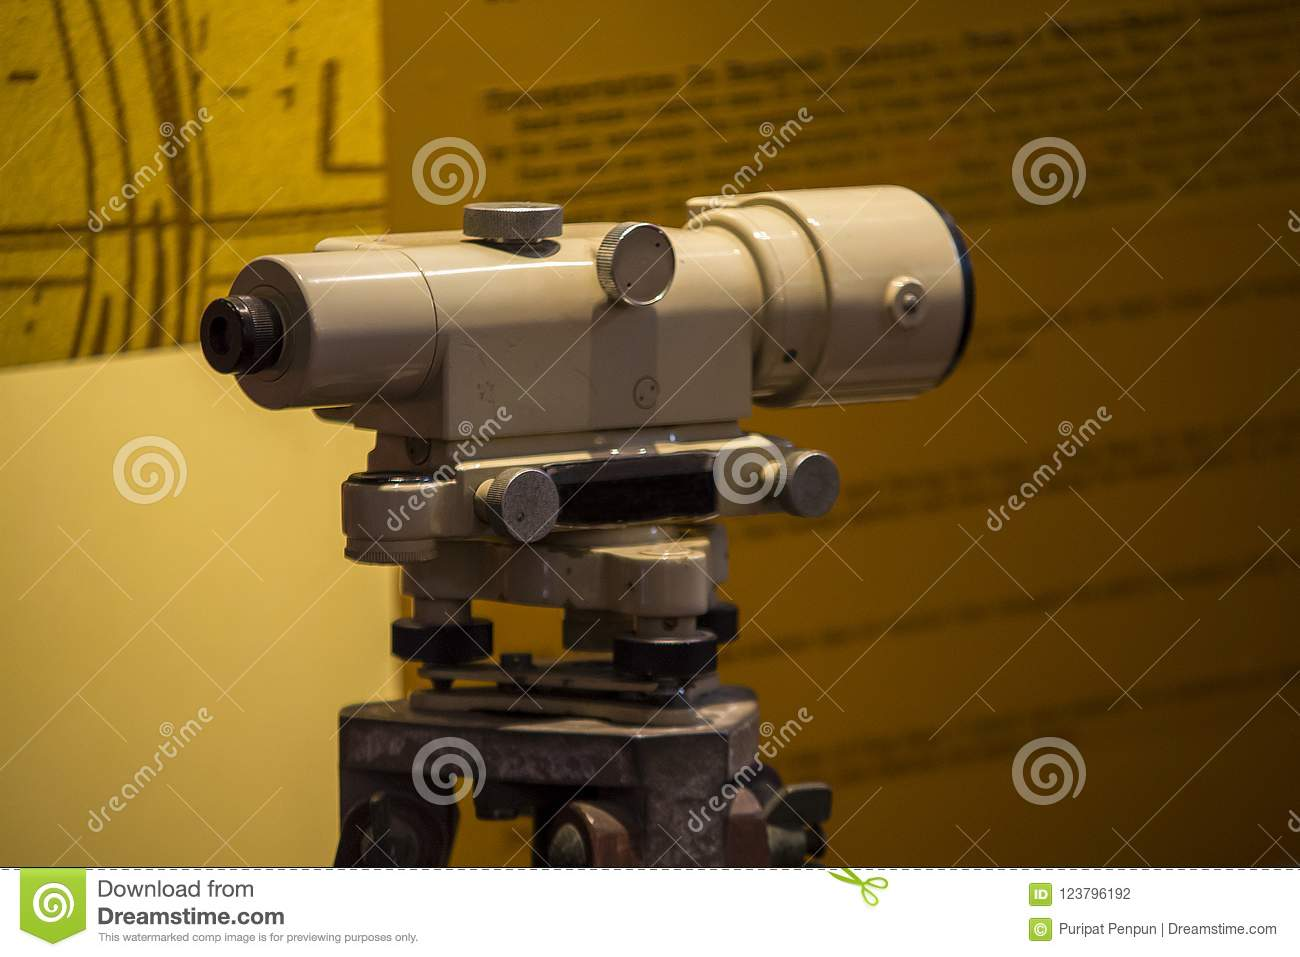 Old-fashioned theodolite camera used to explore the land.